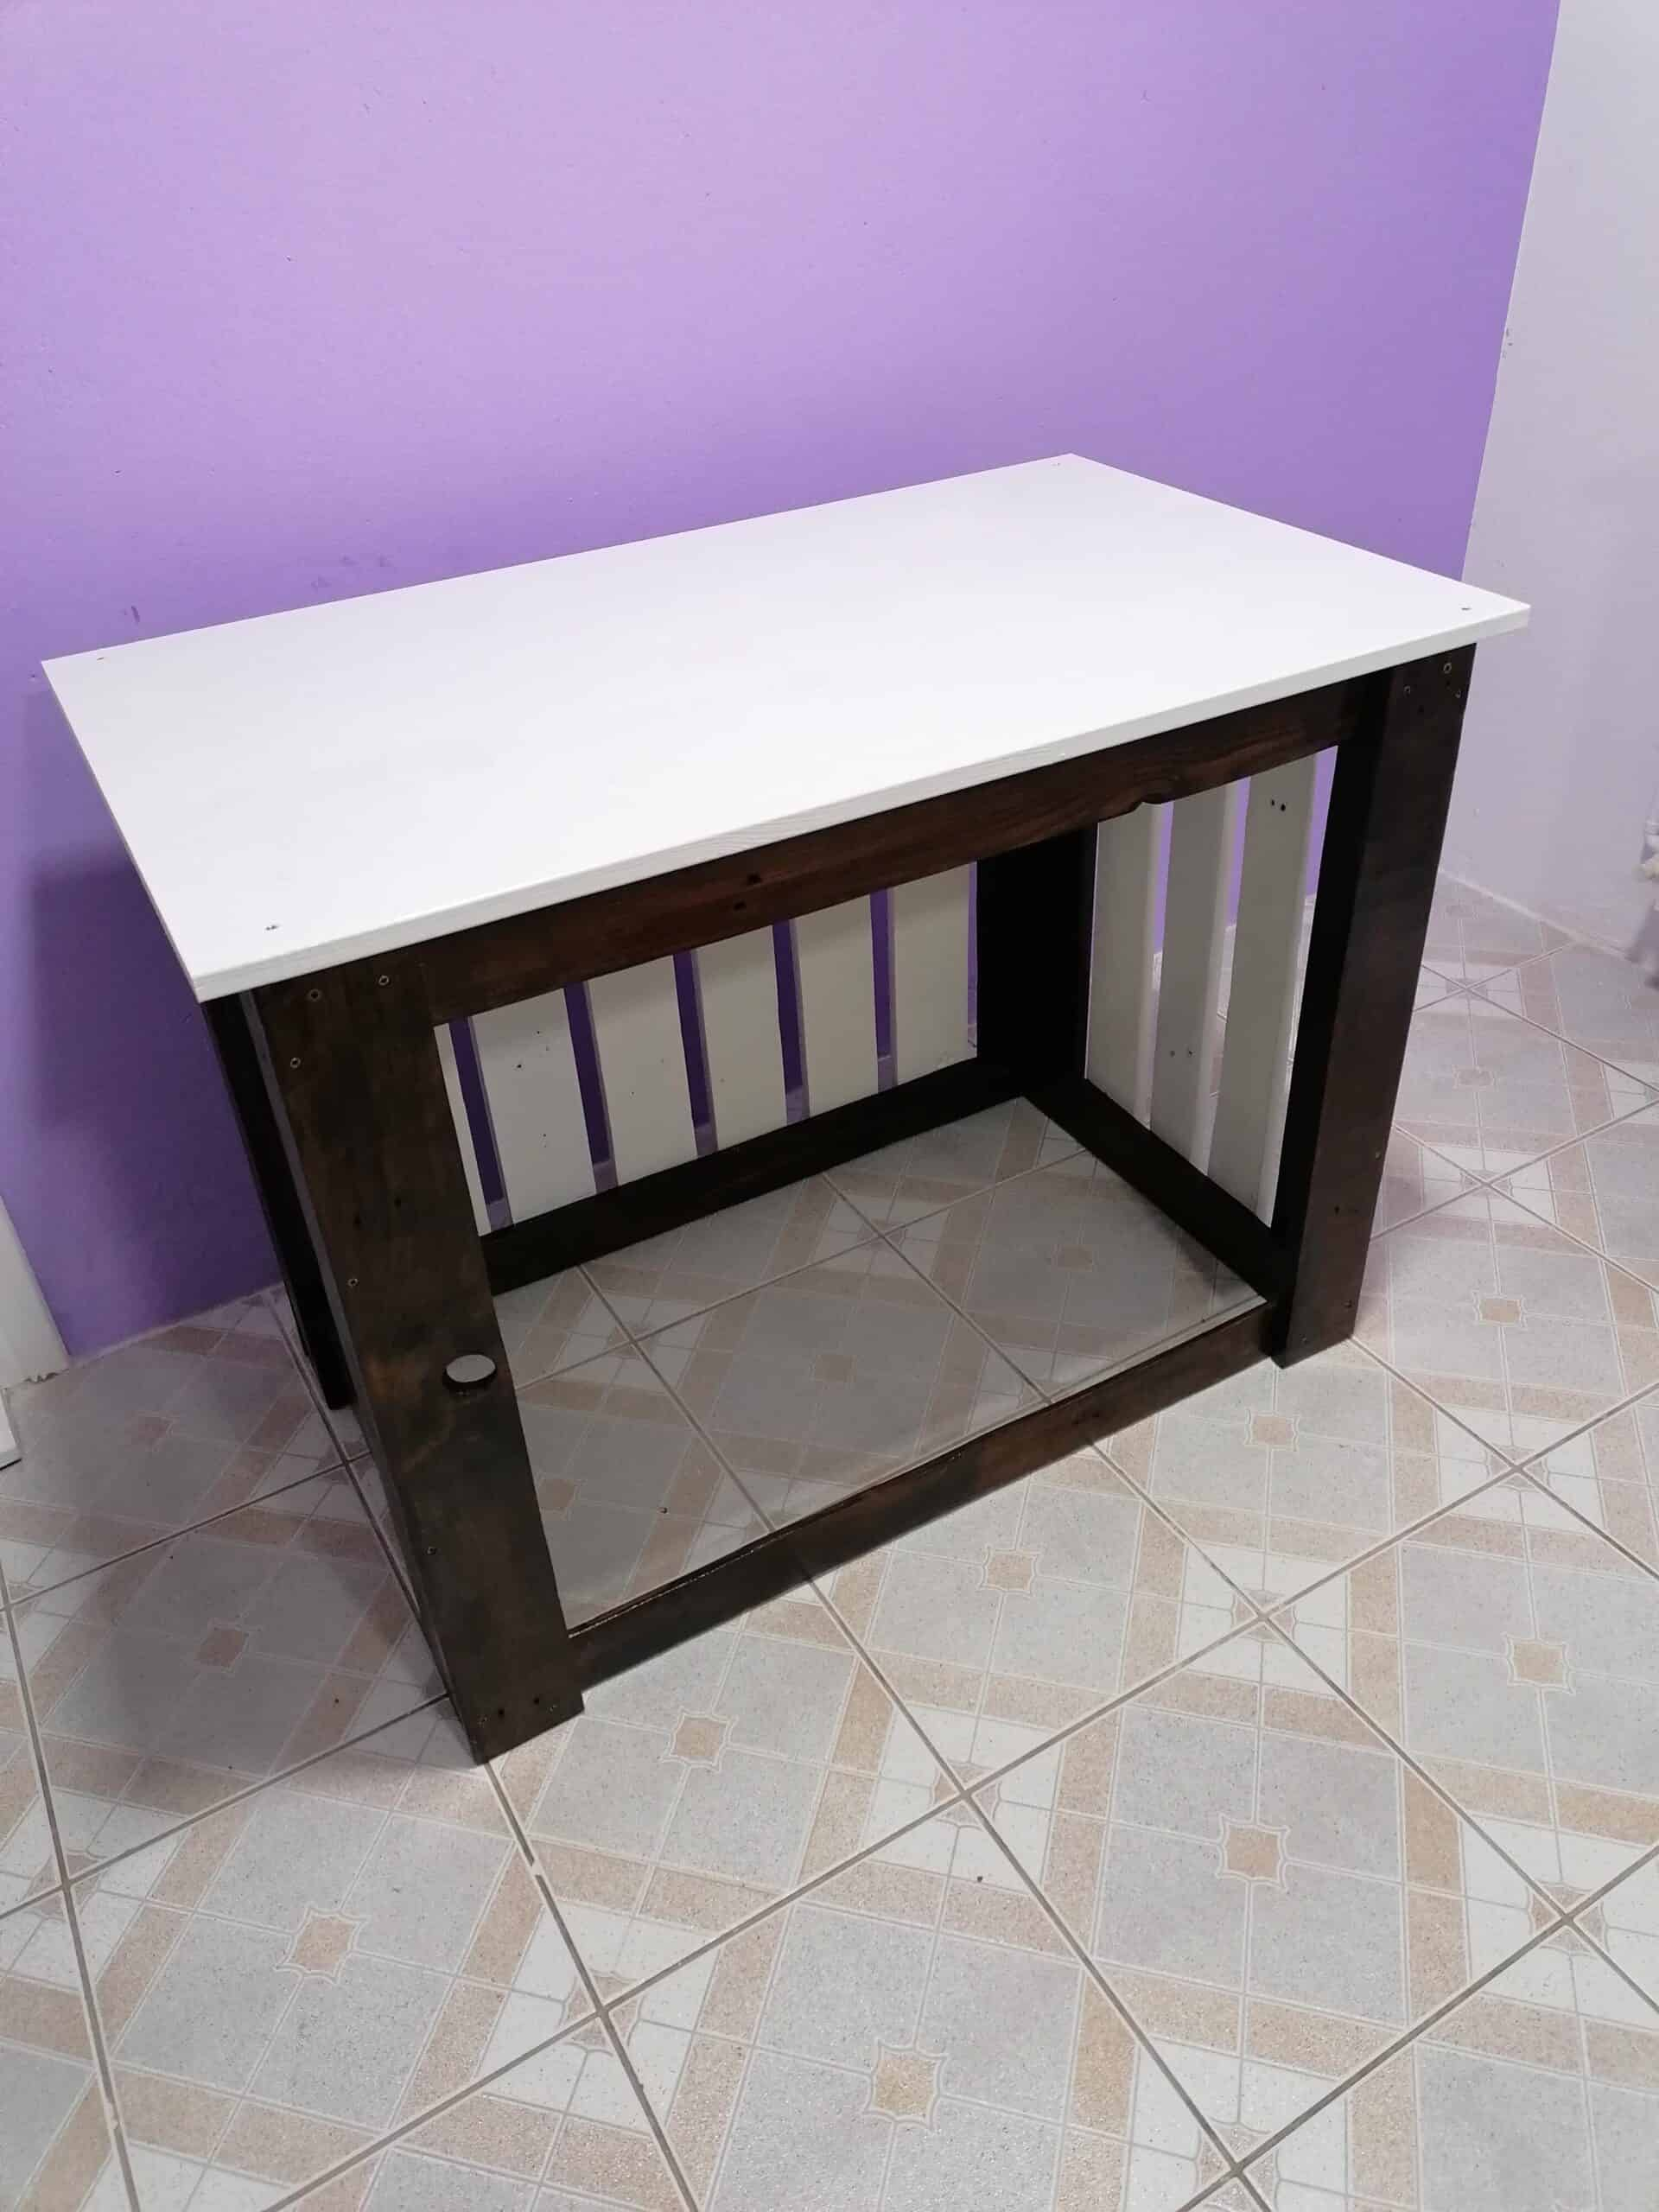 How I Made Work Table for Home Use From Ordinary Pallets